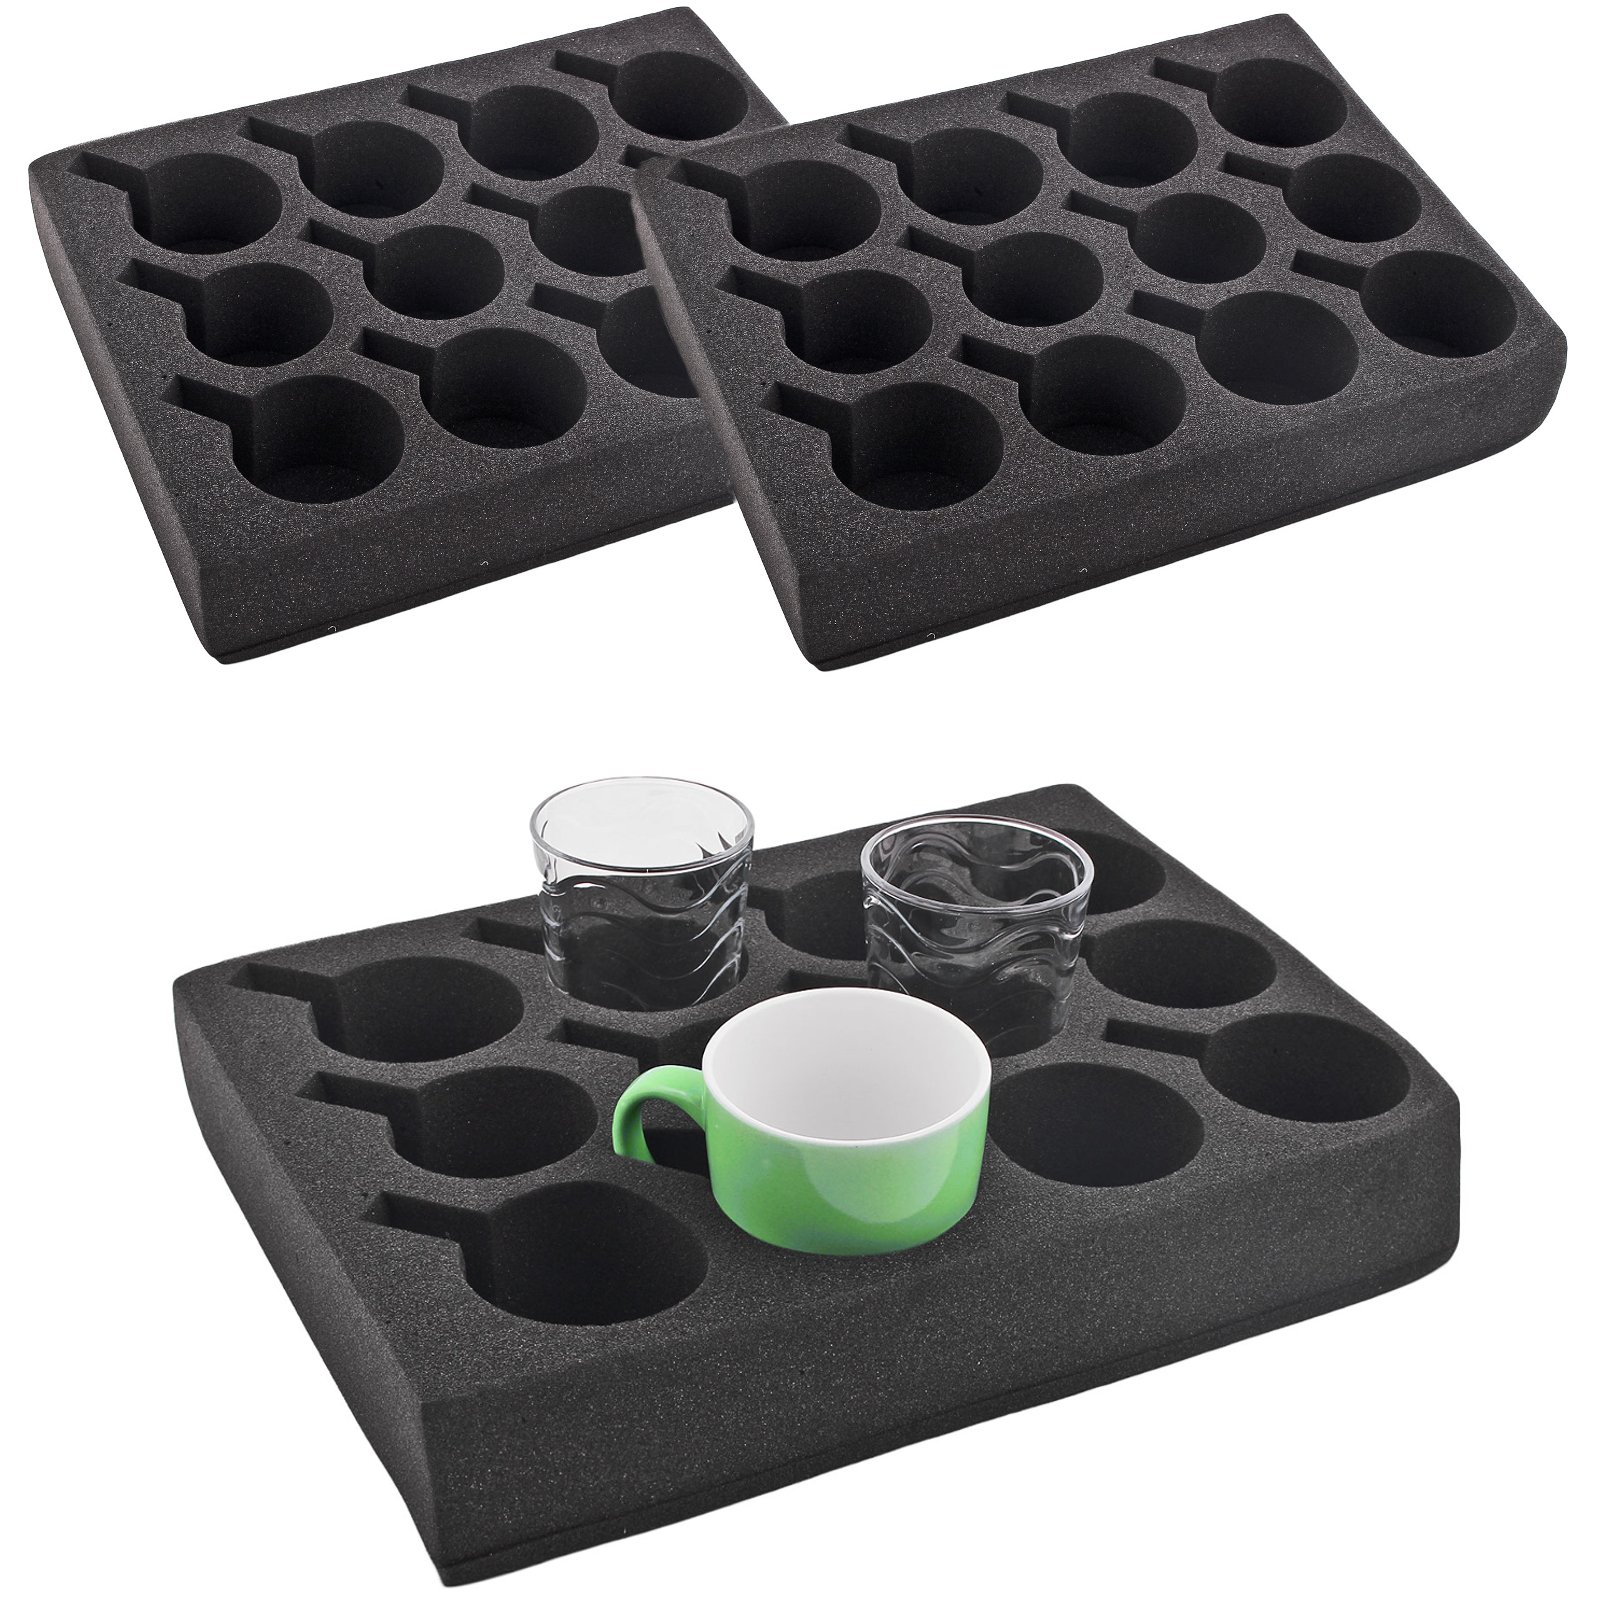 2x cupholders glass holder 12 he black special foam 330 x 245 x 60mm